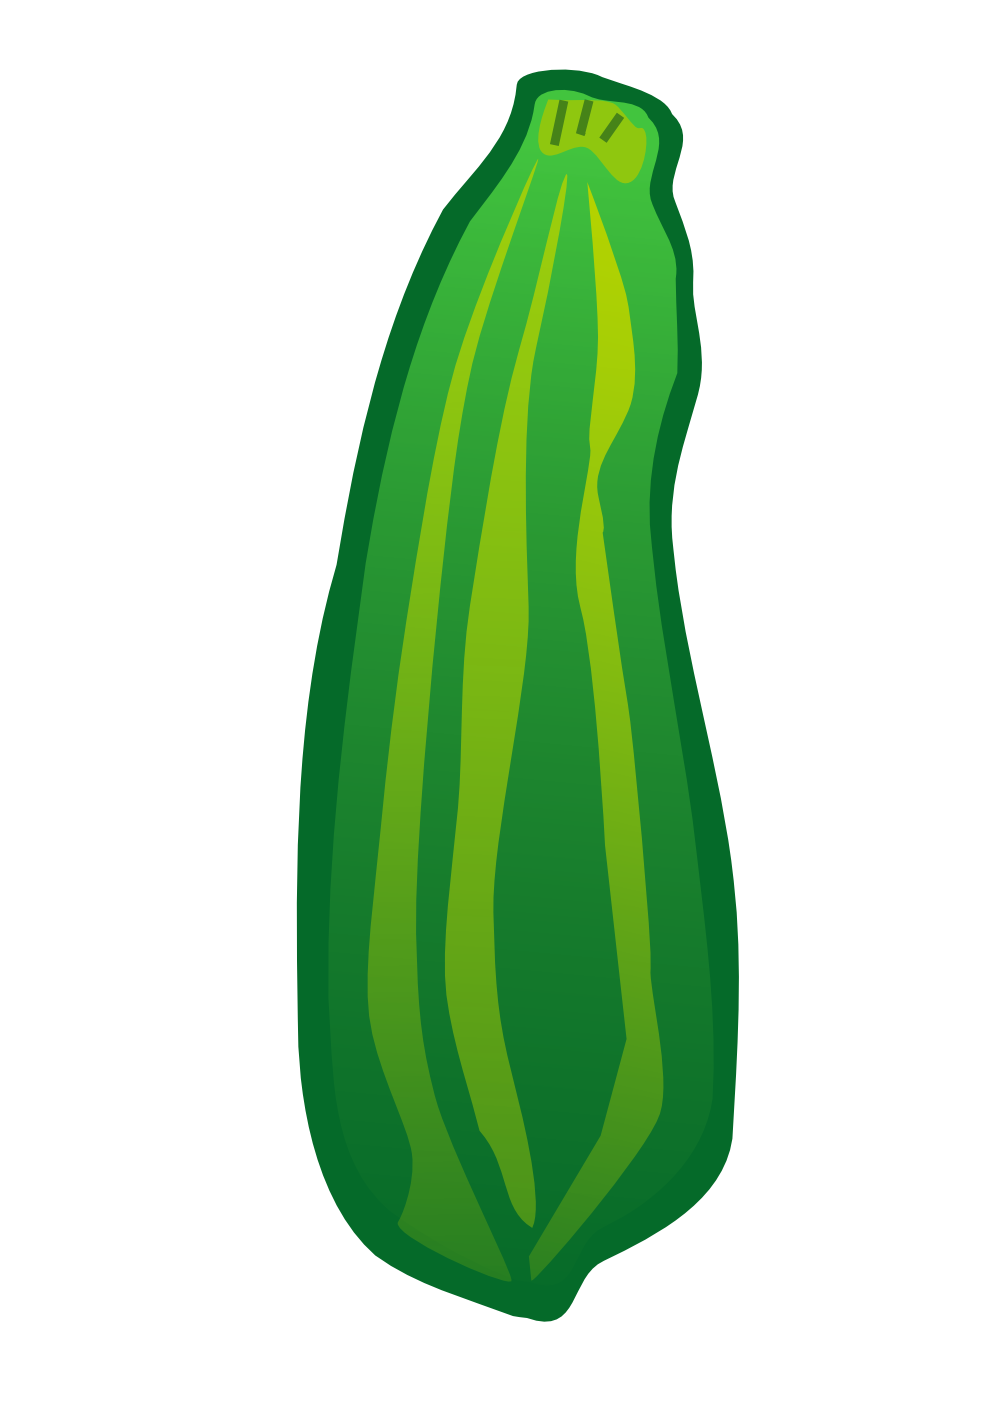 Clip art library cucumber. Zucchini clipart svg royalty free download